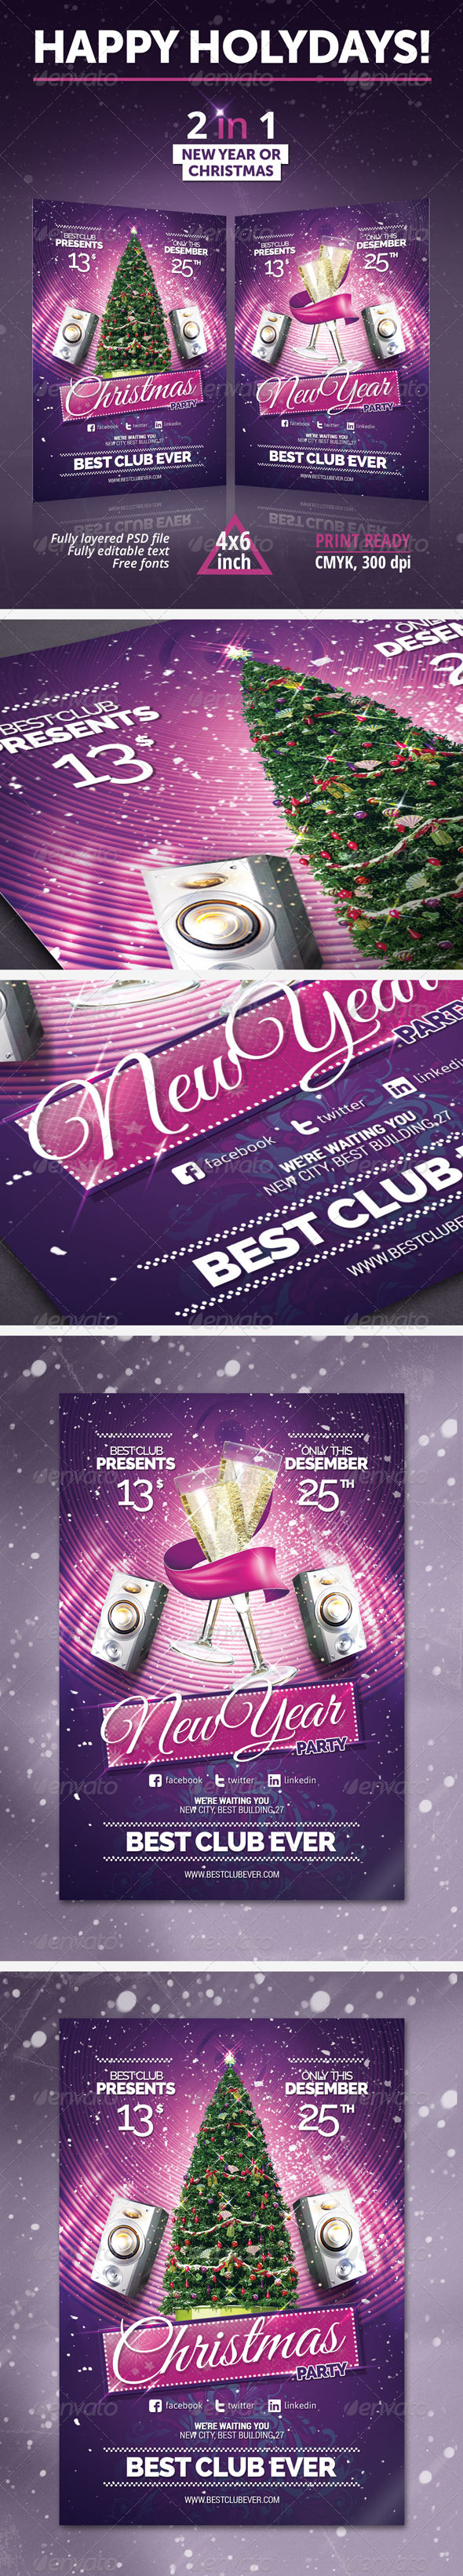 New Year, Christmas Party Flyer